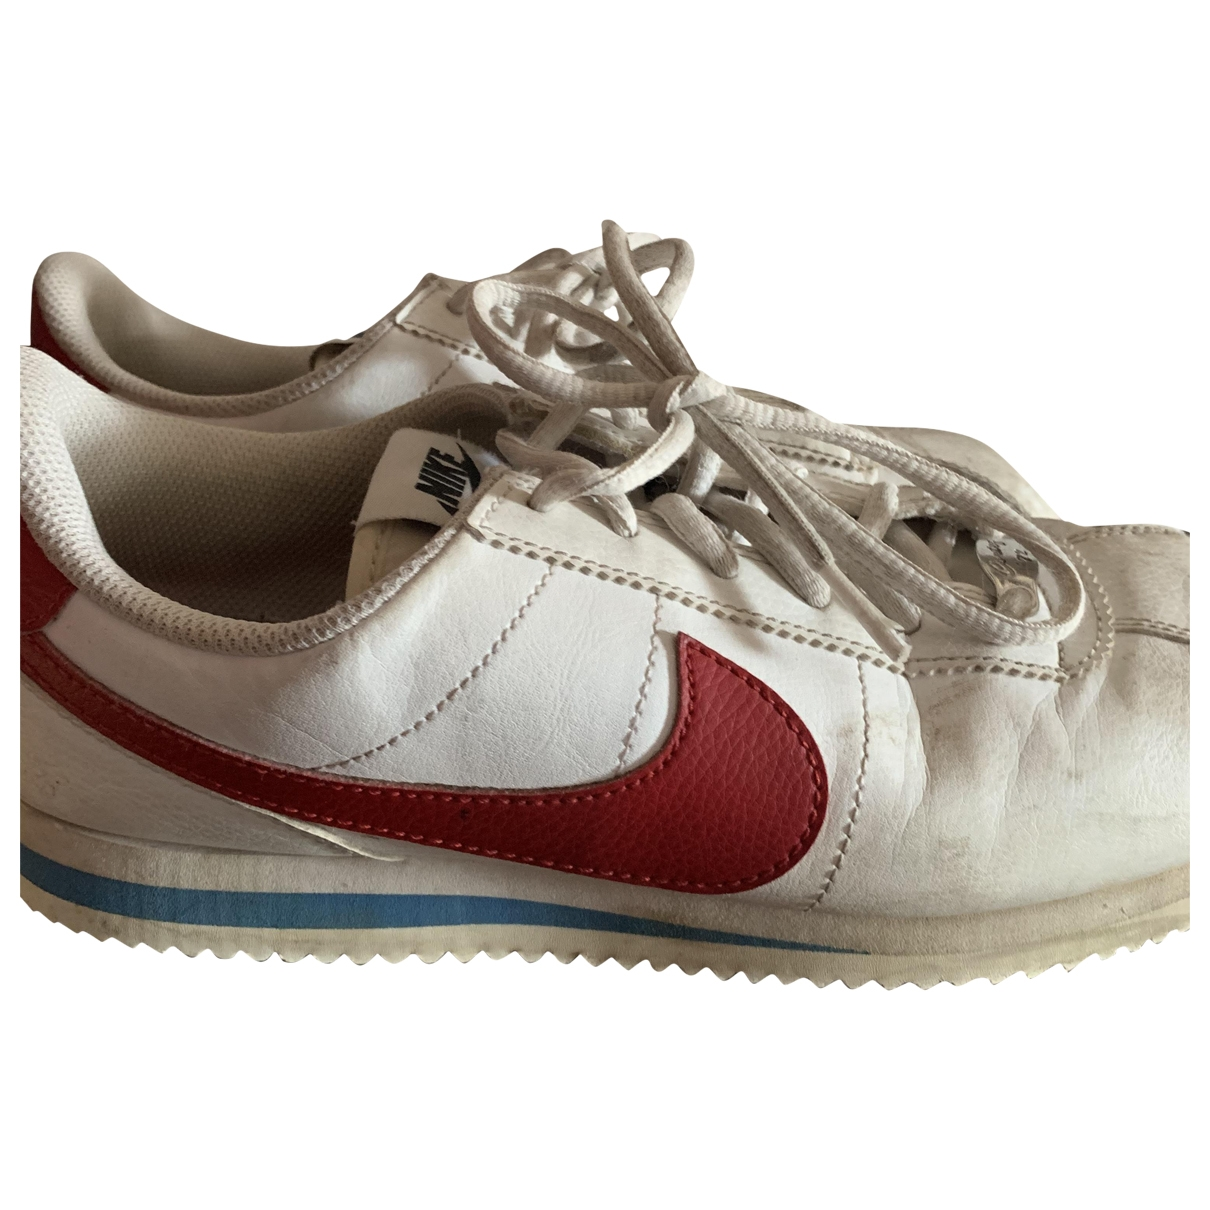 Nike Cortez White Leather Trainers for Women 40 EU